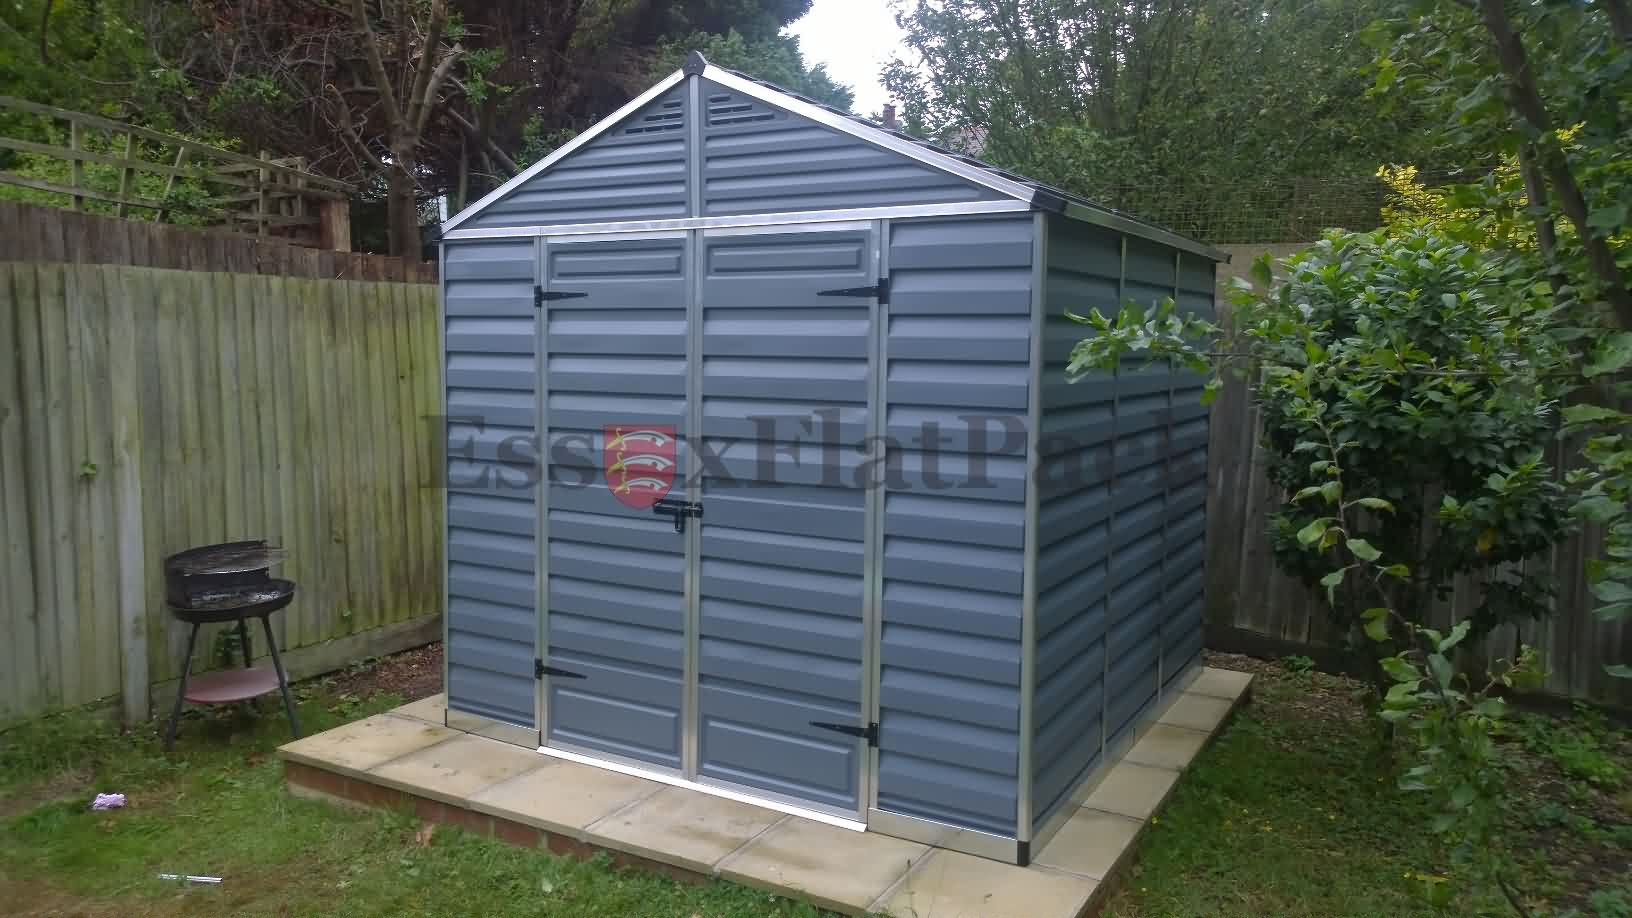 shed-installation-and-assembly-service-118.jpg